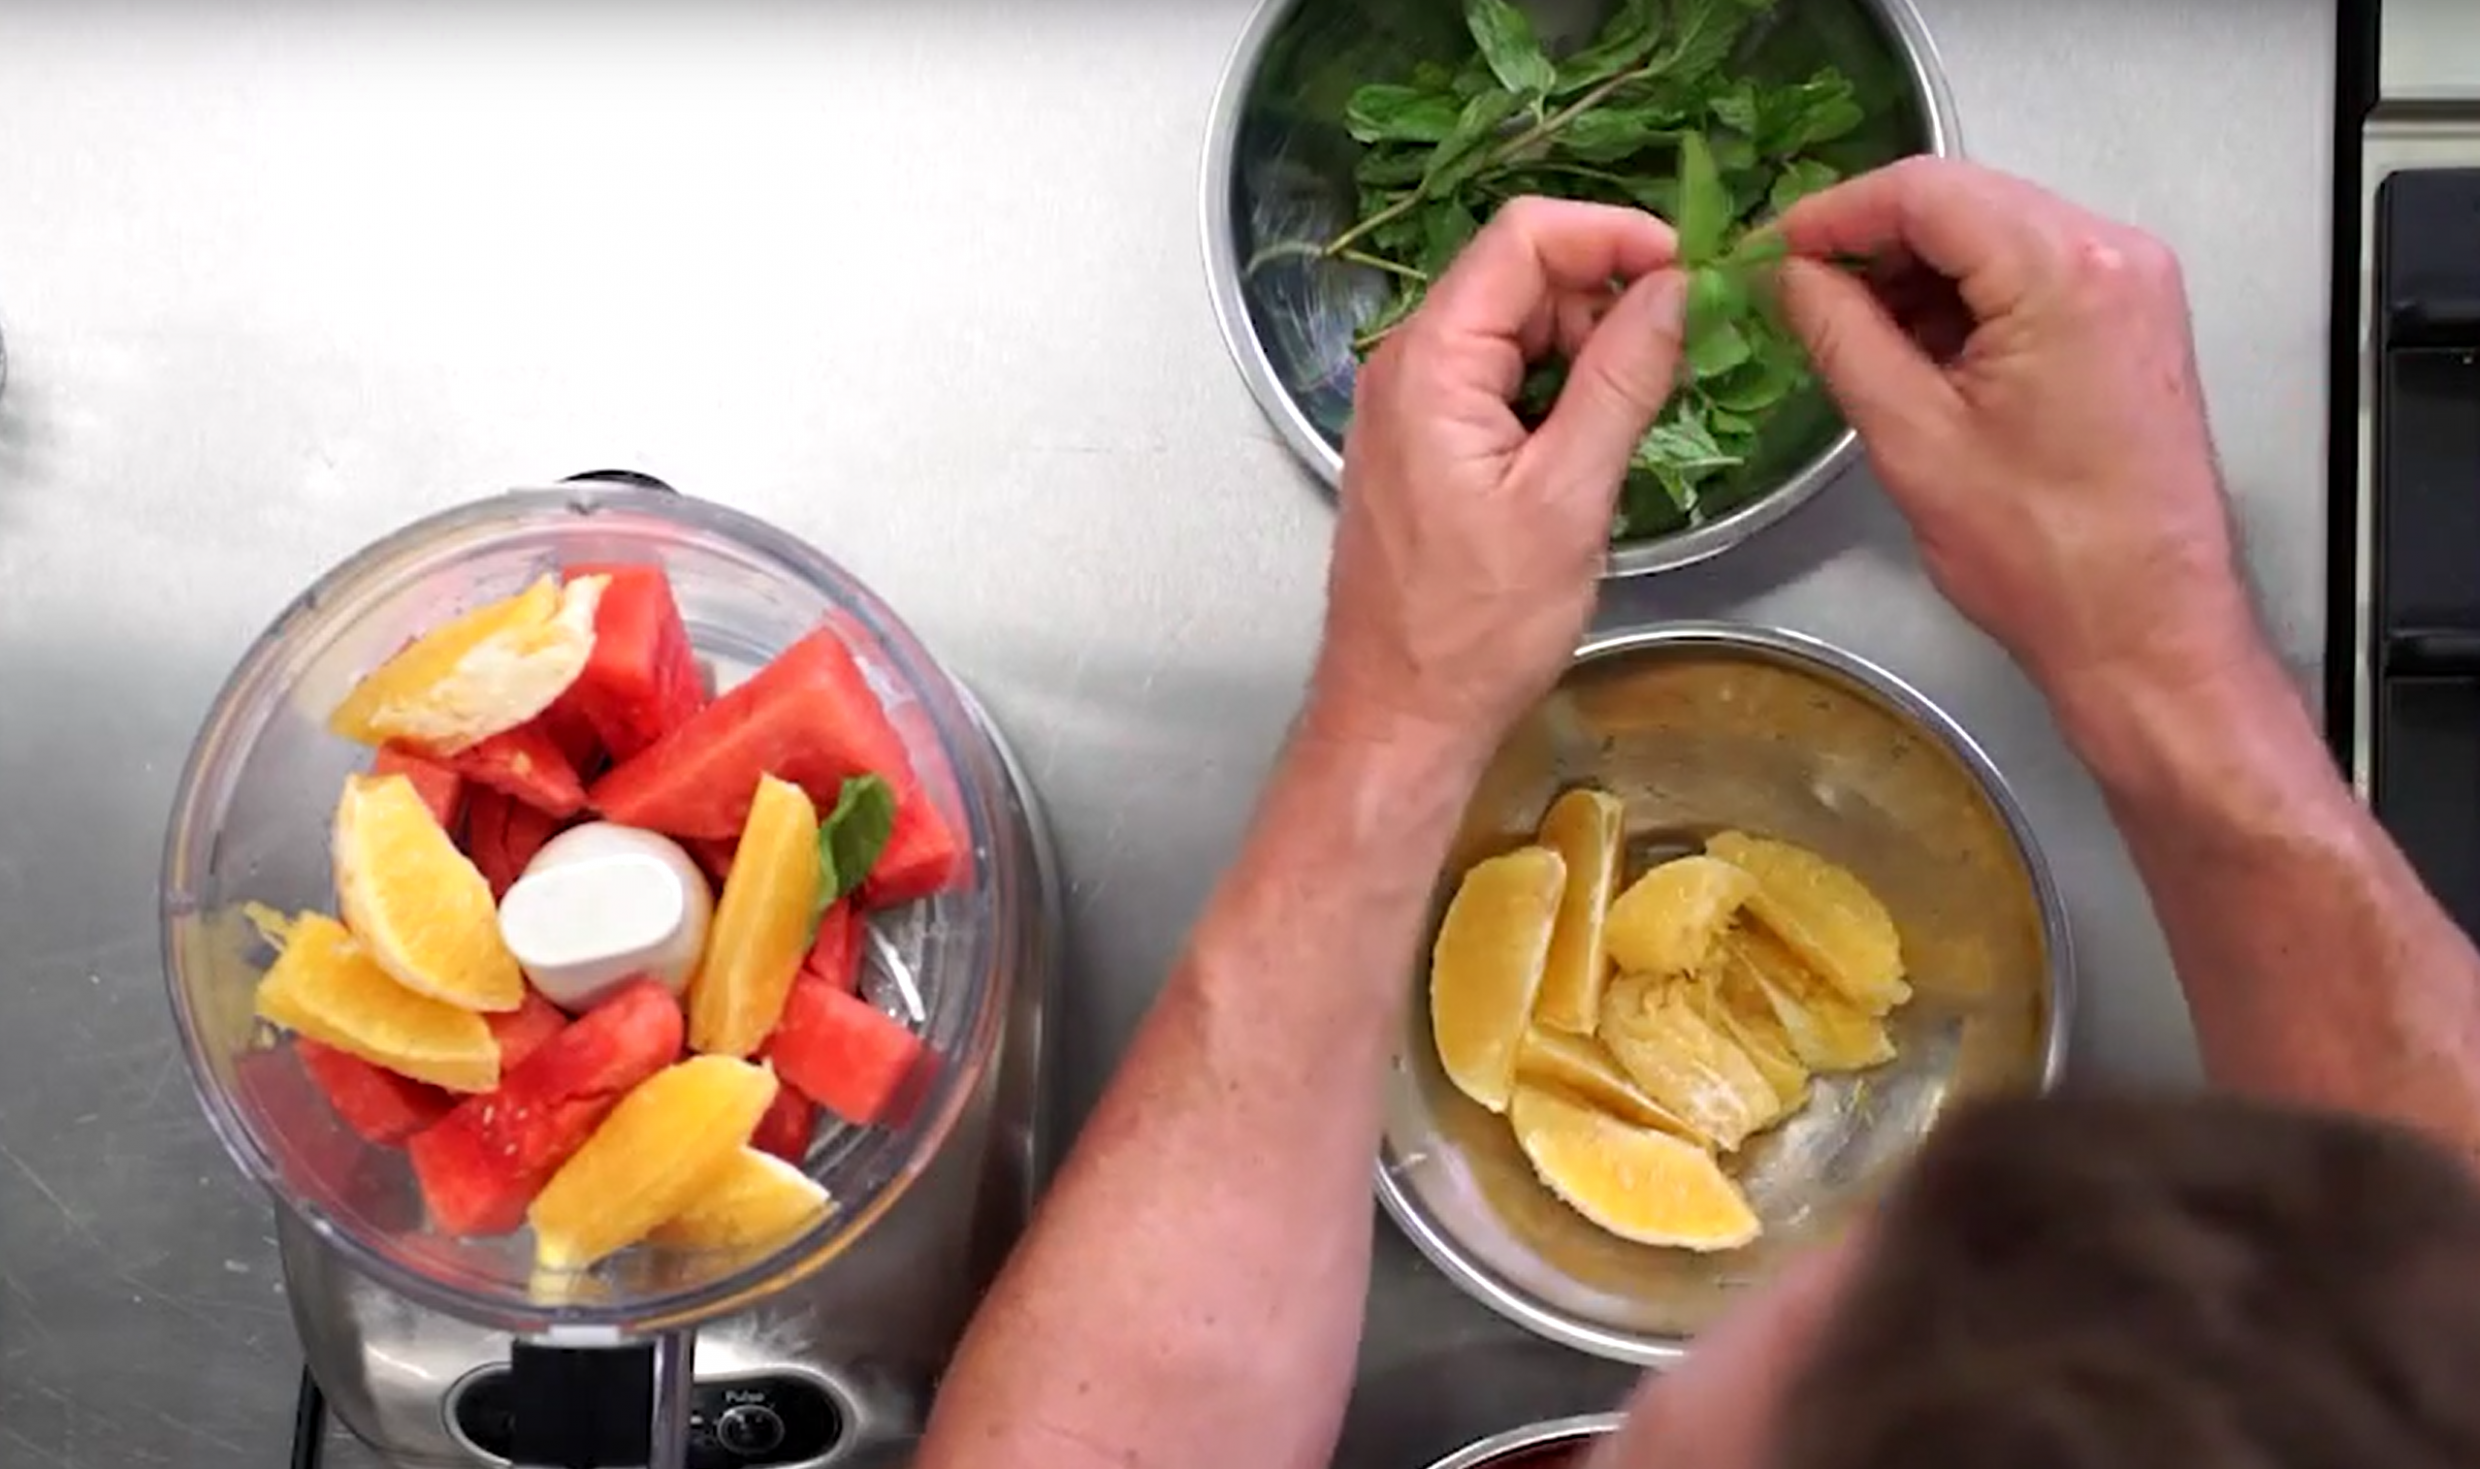 Healthy snacks and packed lunch ideas - Early Years Count (TEYC) - healthy recipes queensland government